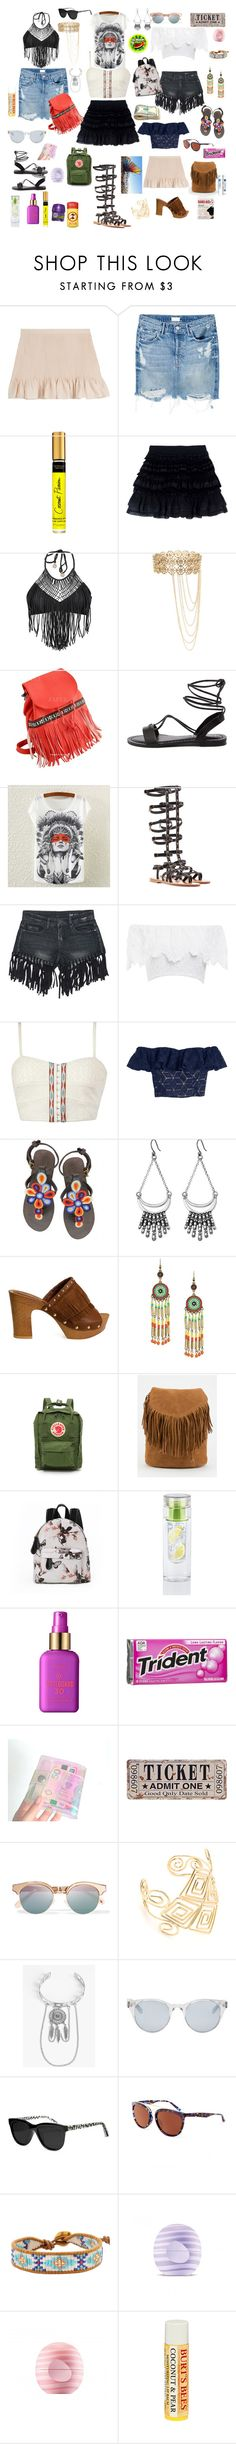 """""""Cochella 2016' we believe in being prepared"""" by denibrad ❤ liked on Polyvore featuring Vanessa Bruno Athé, Mother, Faith Connexion, Luli Fama, K. Jacques, Nightcap, Gimmicks, Rebecca Taylor, Lucky Brand and Robert Rose"""